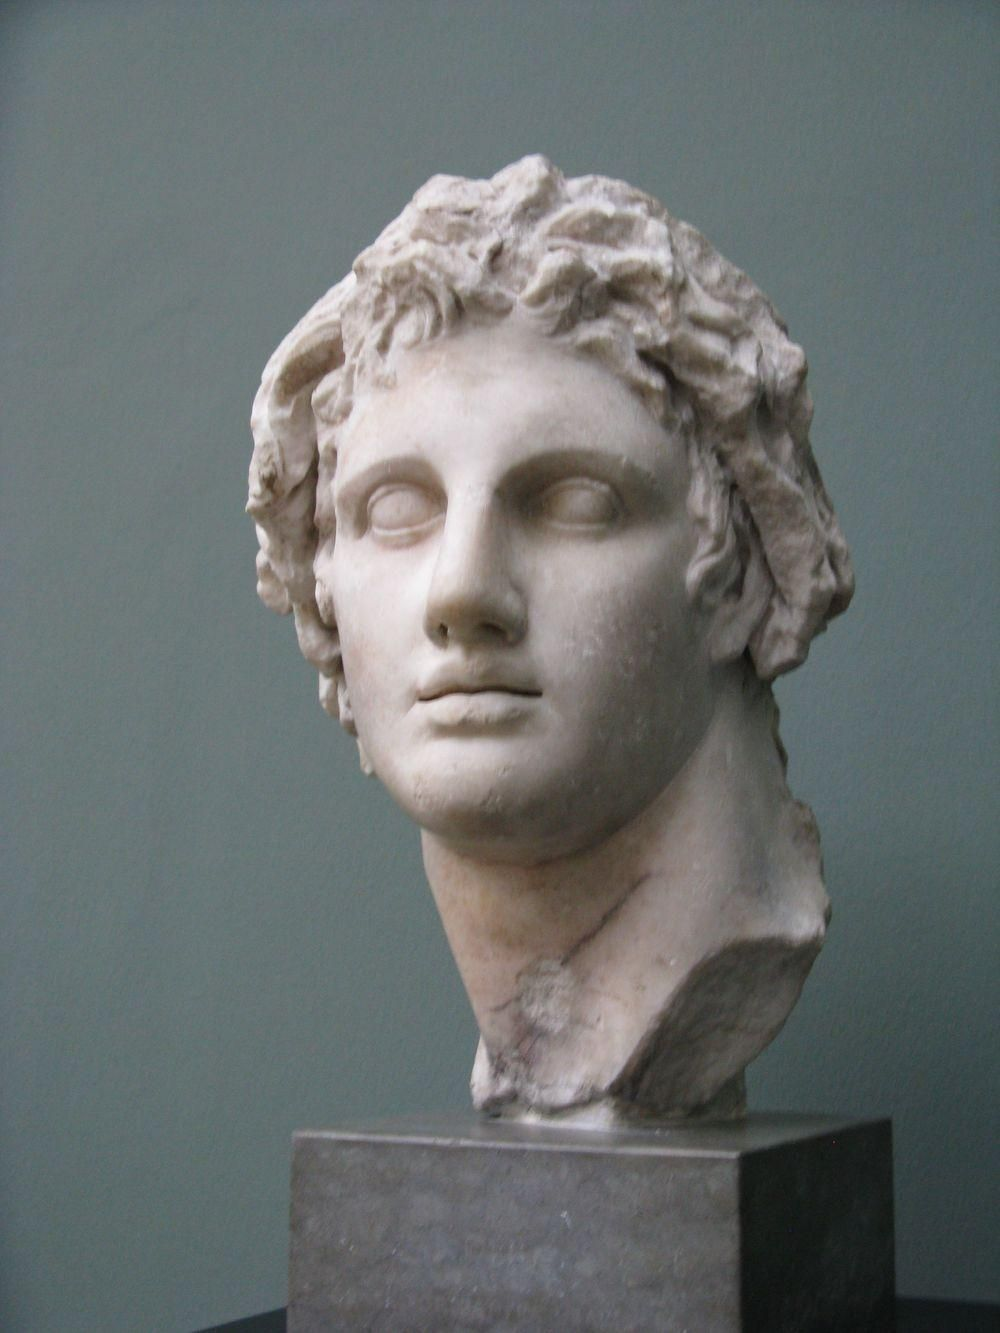 Alexander the Great - image 1 - student project